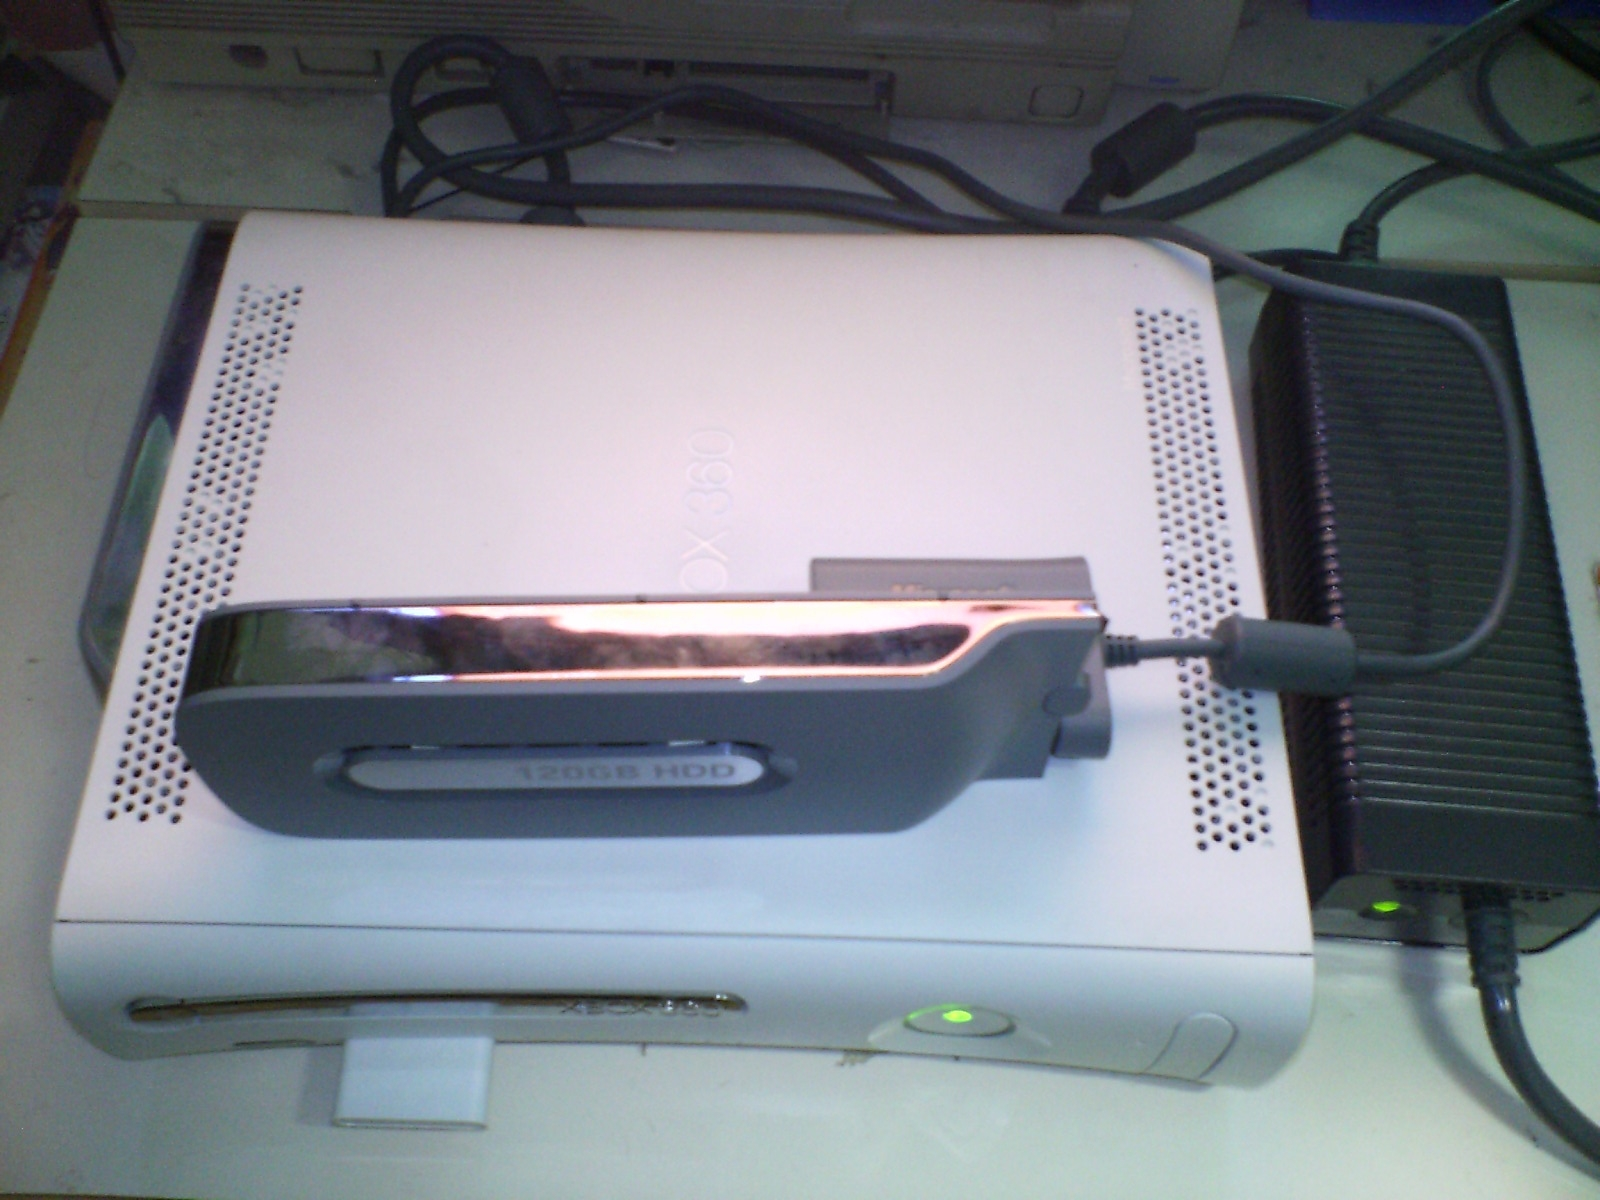 File:Xbox360 TransferringTo120GBHDD.jpg - Wikimedia Commons